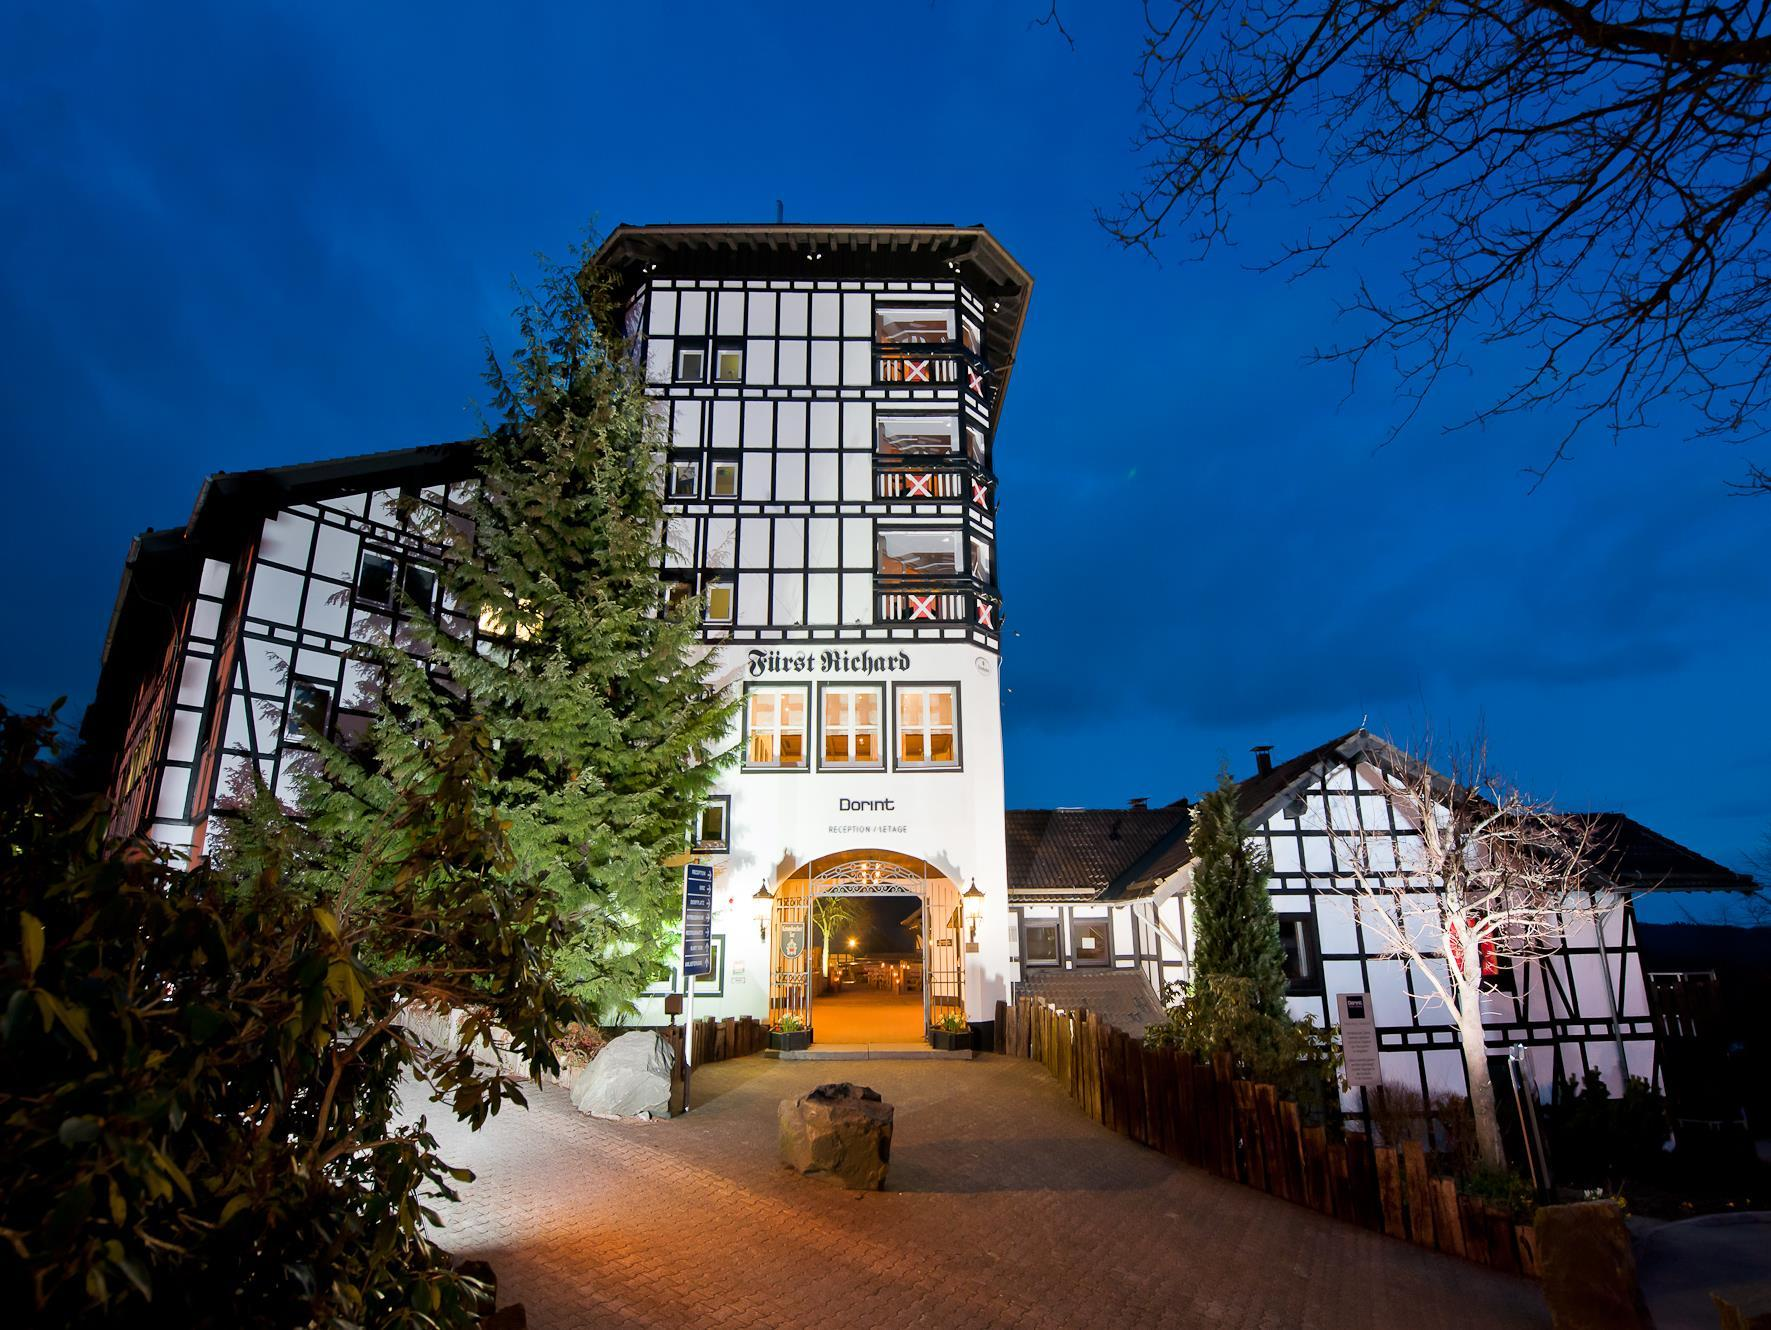 Dorint Hotel Sportresort Winterberg Sauerland In Germany - Winterberg Hotel